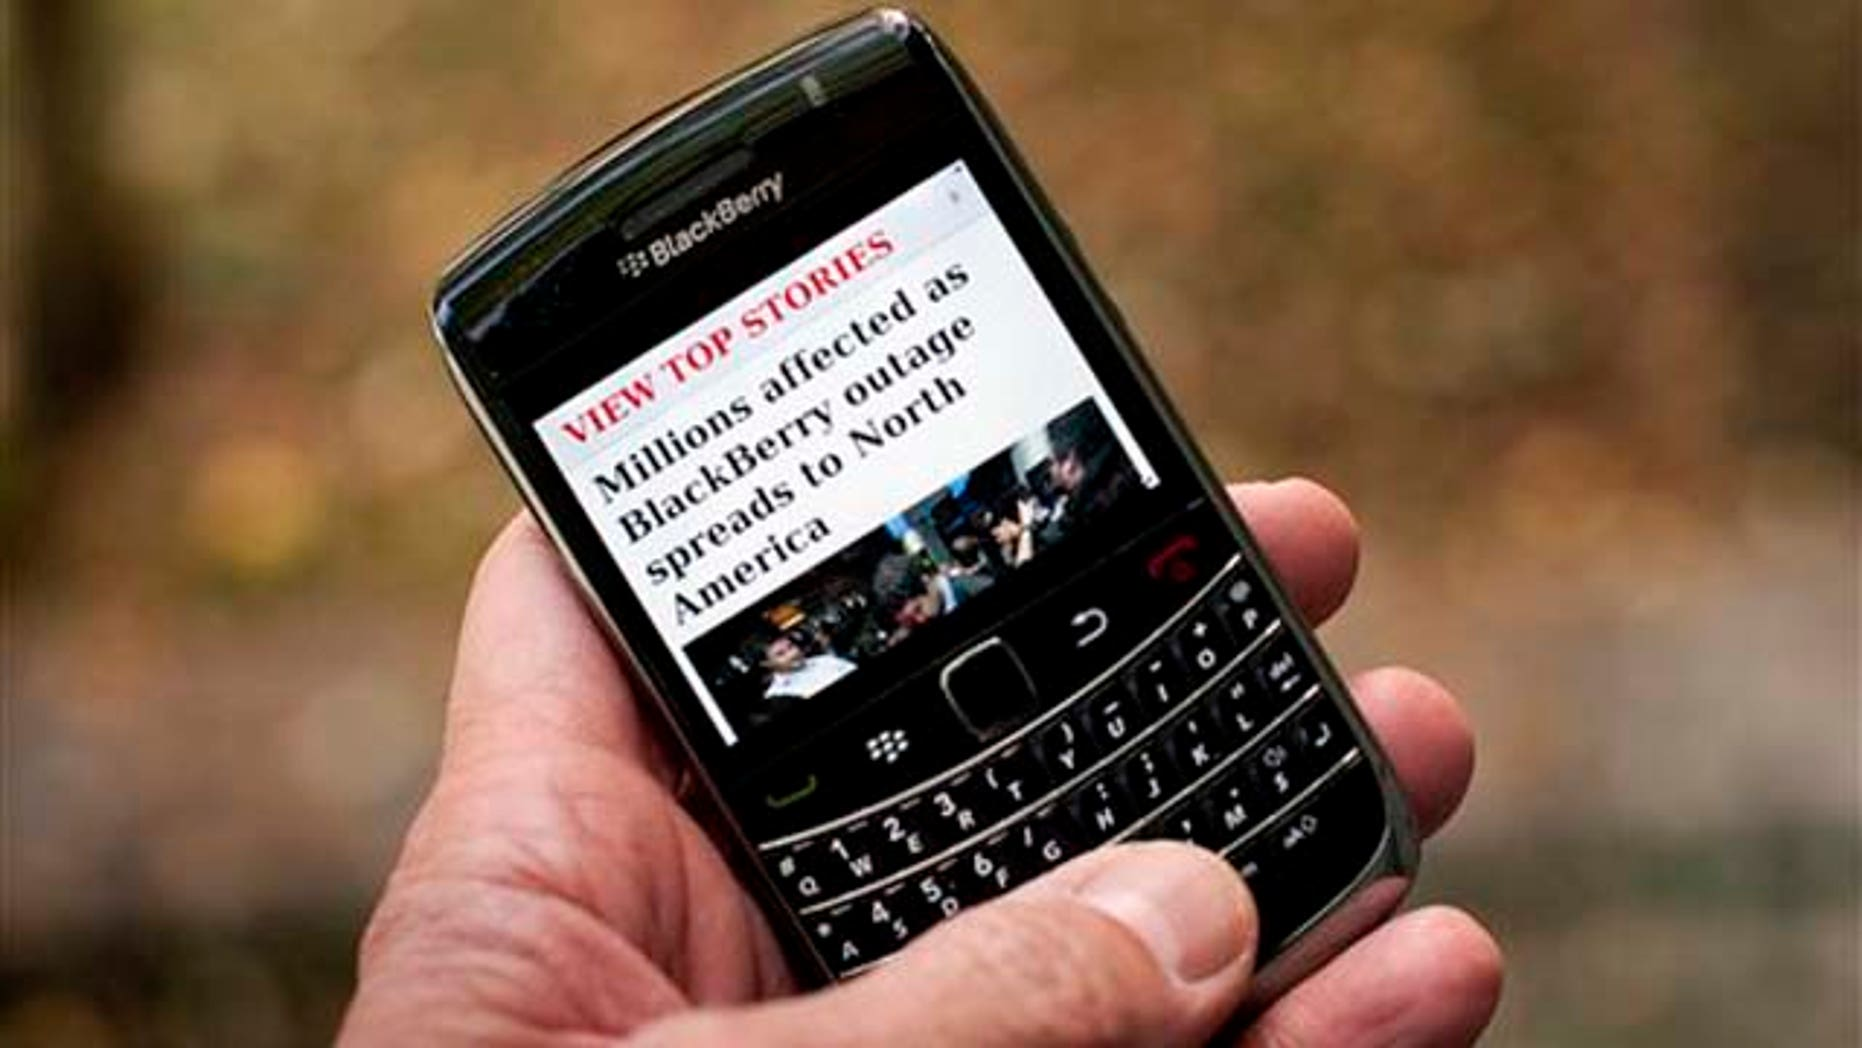 Oct. 12, 2011: A Blackberry user reads a story about a Blackberry outage that is affecting millions of users of the smartphone that has now spread to North America Wednesday in Montreal. Sporadic outages of BlackBerry messaging and email service spread to the U.S. and Canada on Wednesday, as problems stretched into the third day for Europe, Asia, Latin America and Africa.